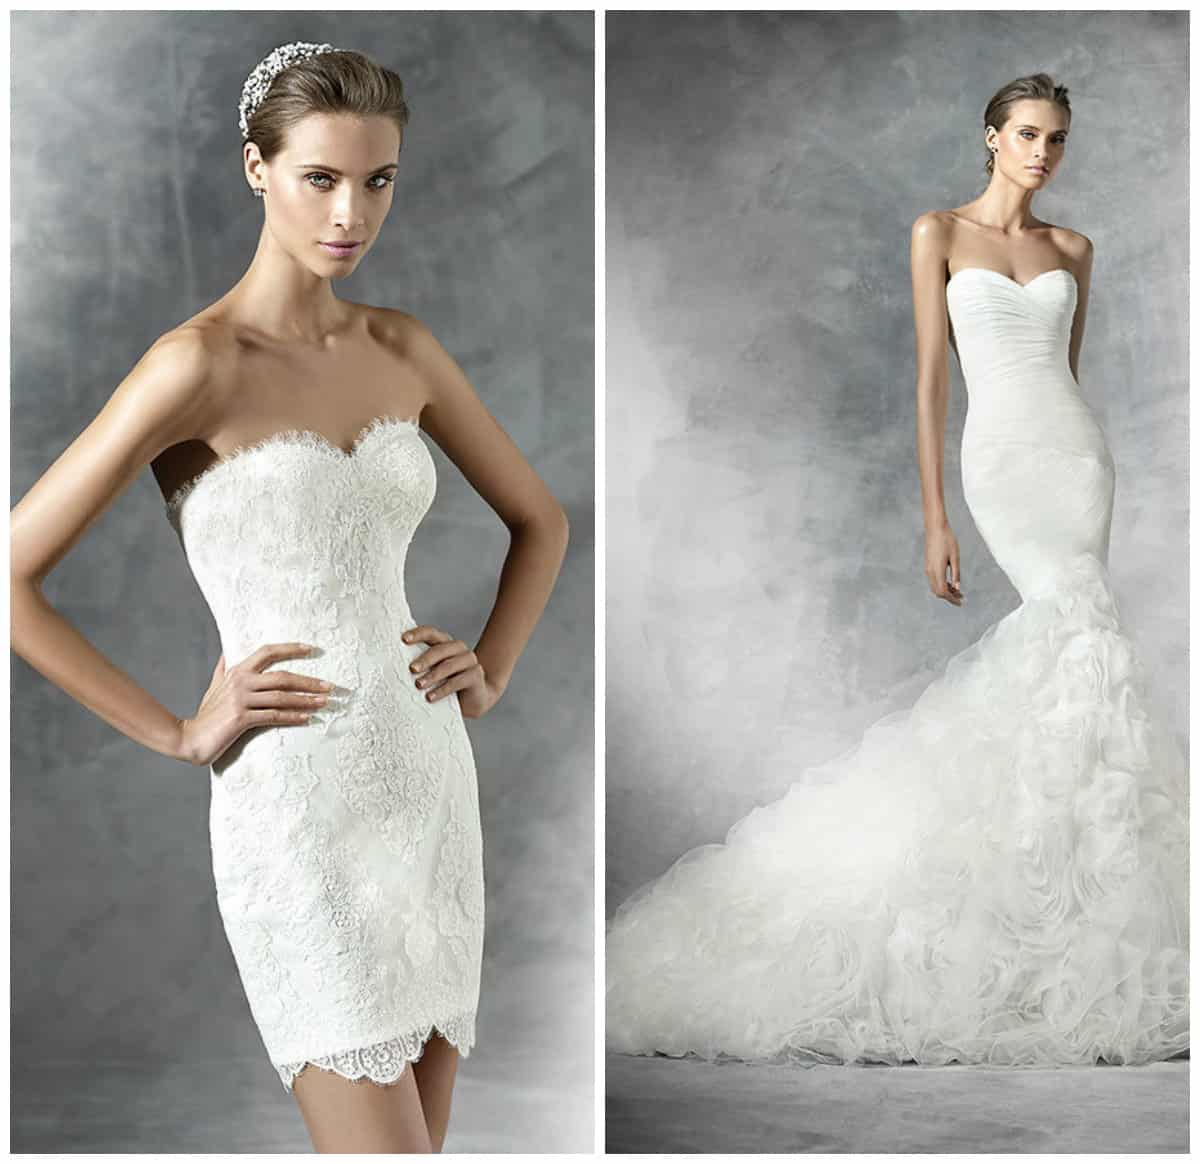 Short wedding dresses 2016 from Pronovias